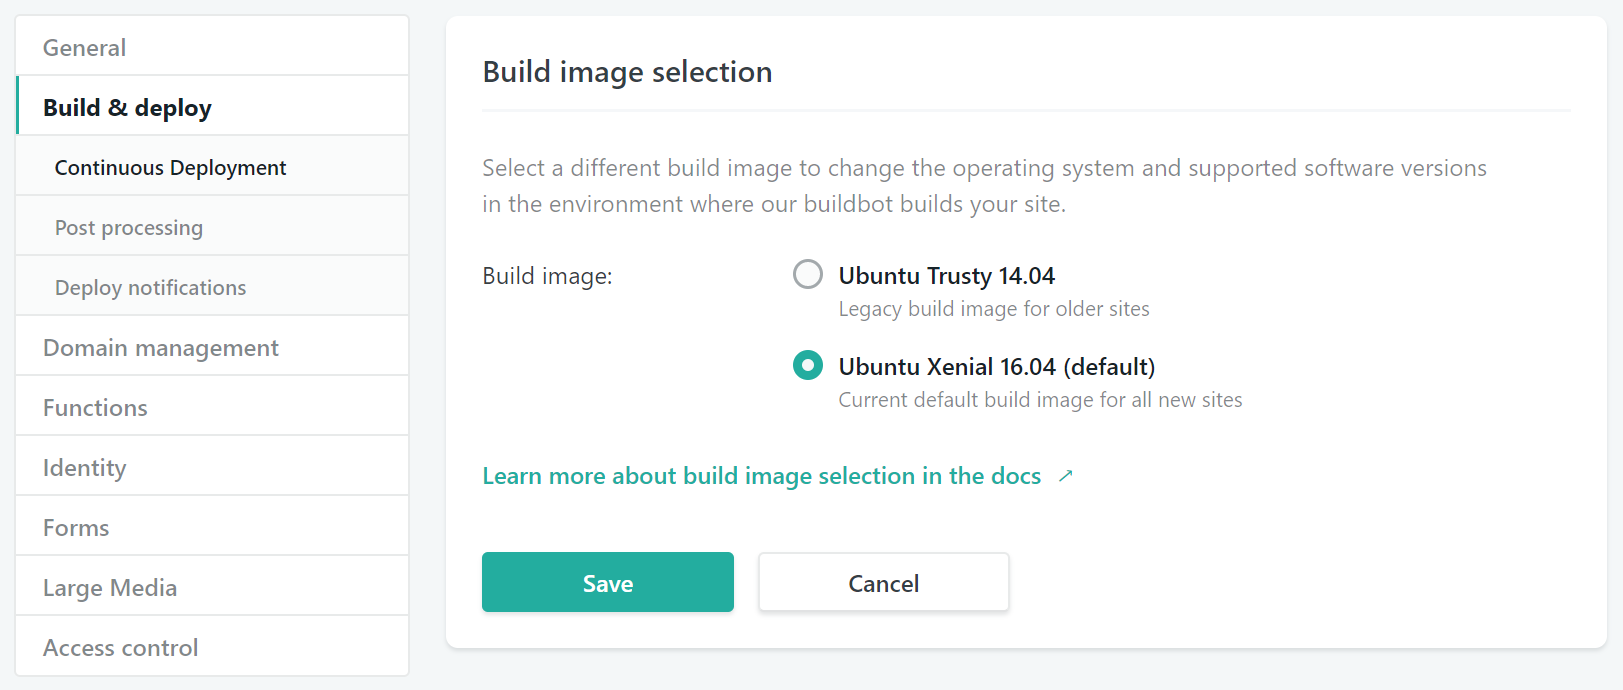 Build image selection settings UI at Settings > Build & deploy > Continuous deployment